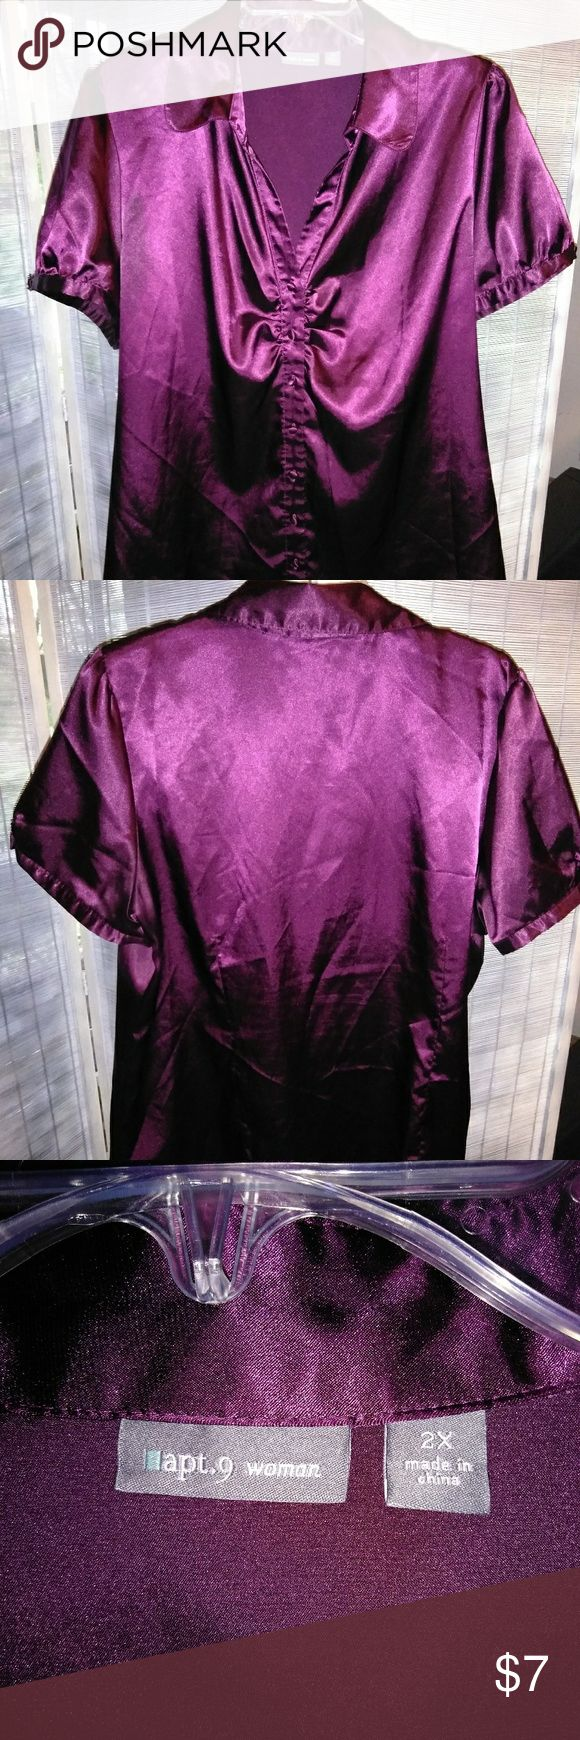 Apt 9 purple satin top Gently worn~still in good condition~ * no stains, snags or tears seen throughout Apt. 9 Tops